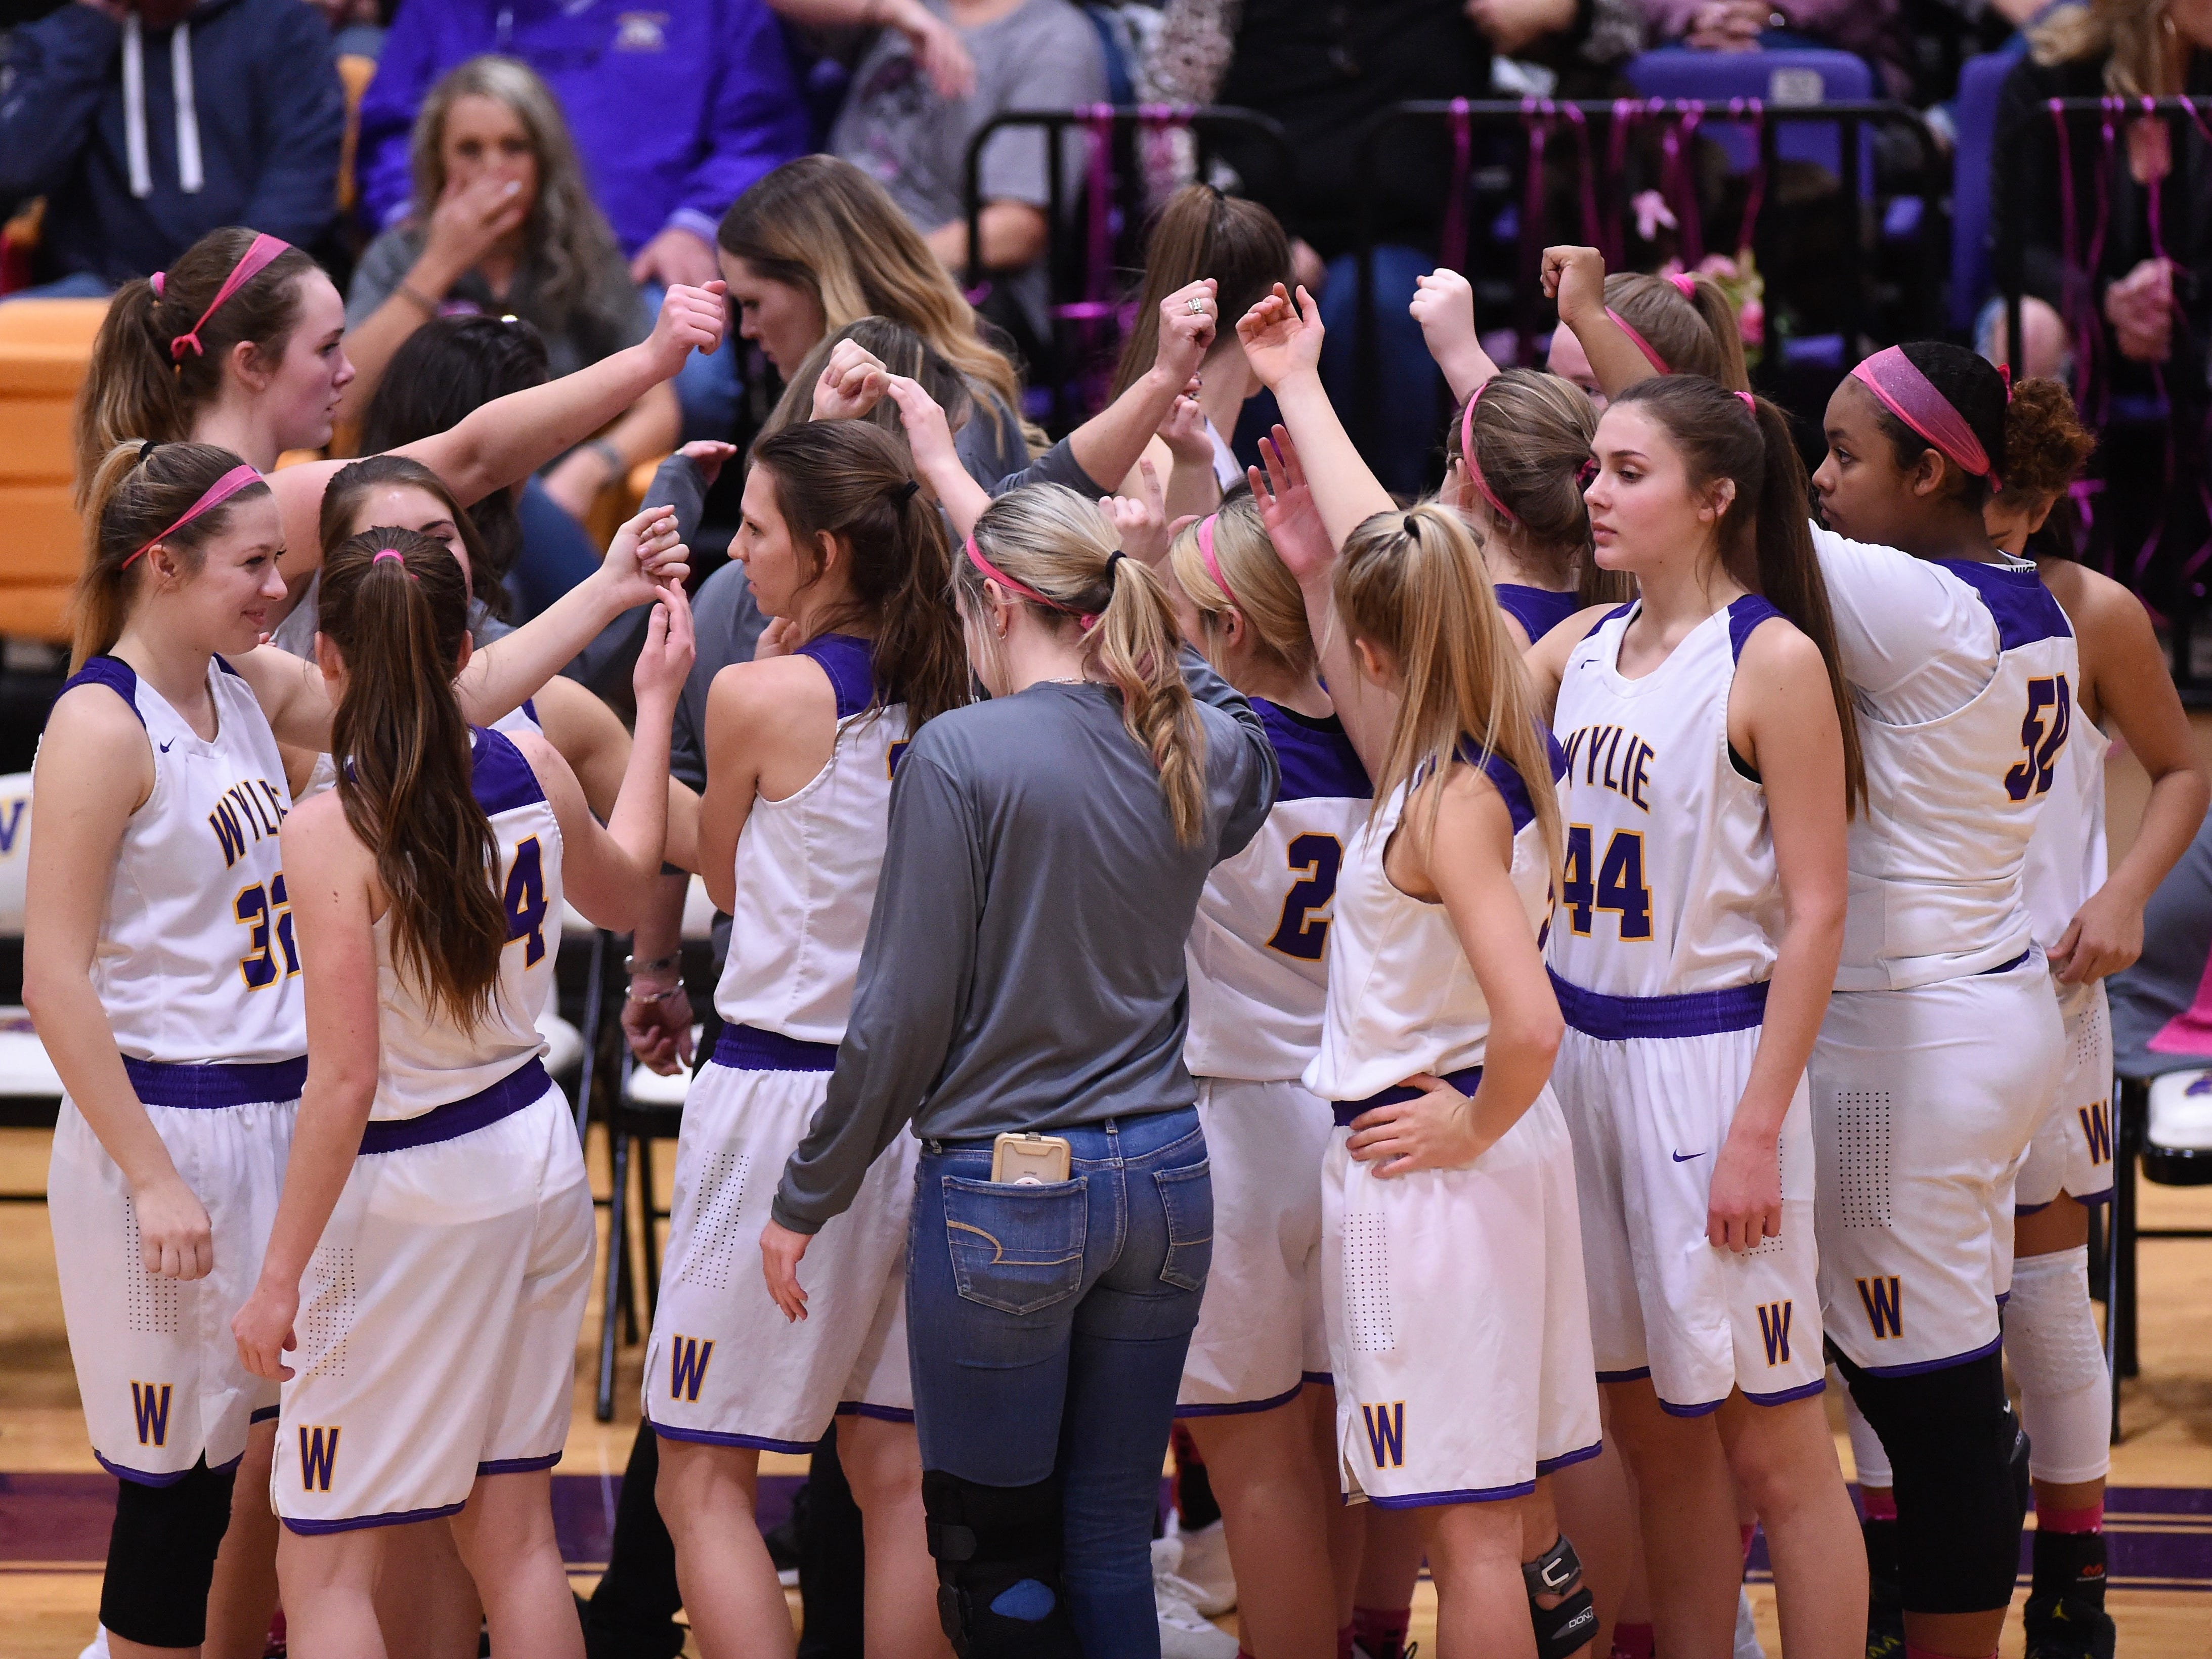 The Wylie girls basketball team breaks a huddle before facing Merkel in a Coaches vs. Cancer Pink Out game on Tuesday, Dec. 4, 2018. The Lady Bulldogs won 75-39.